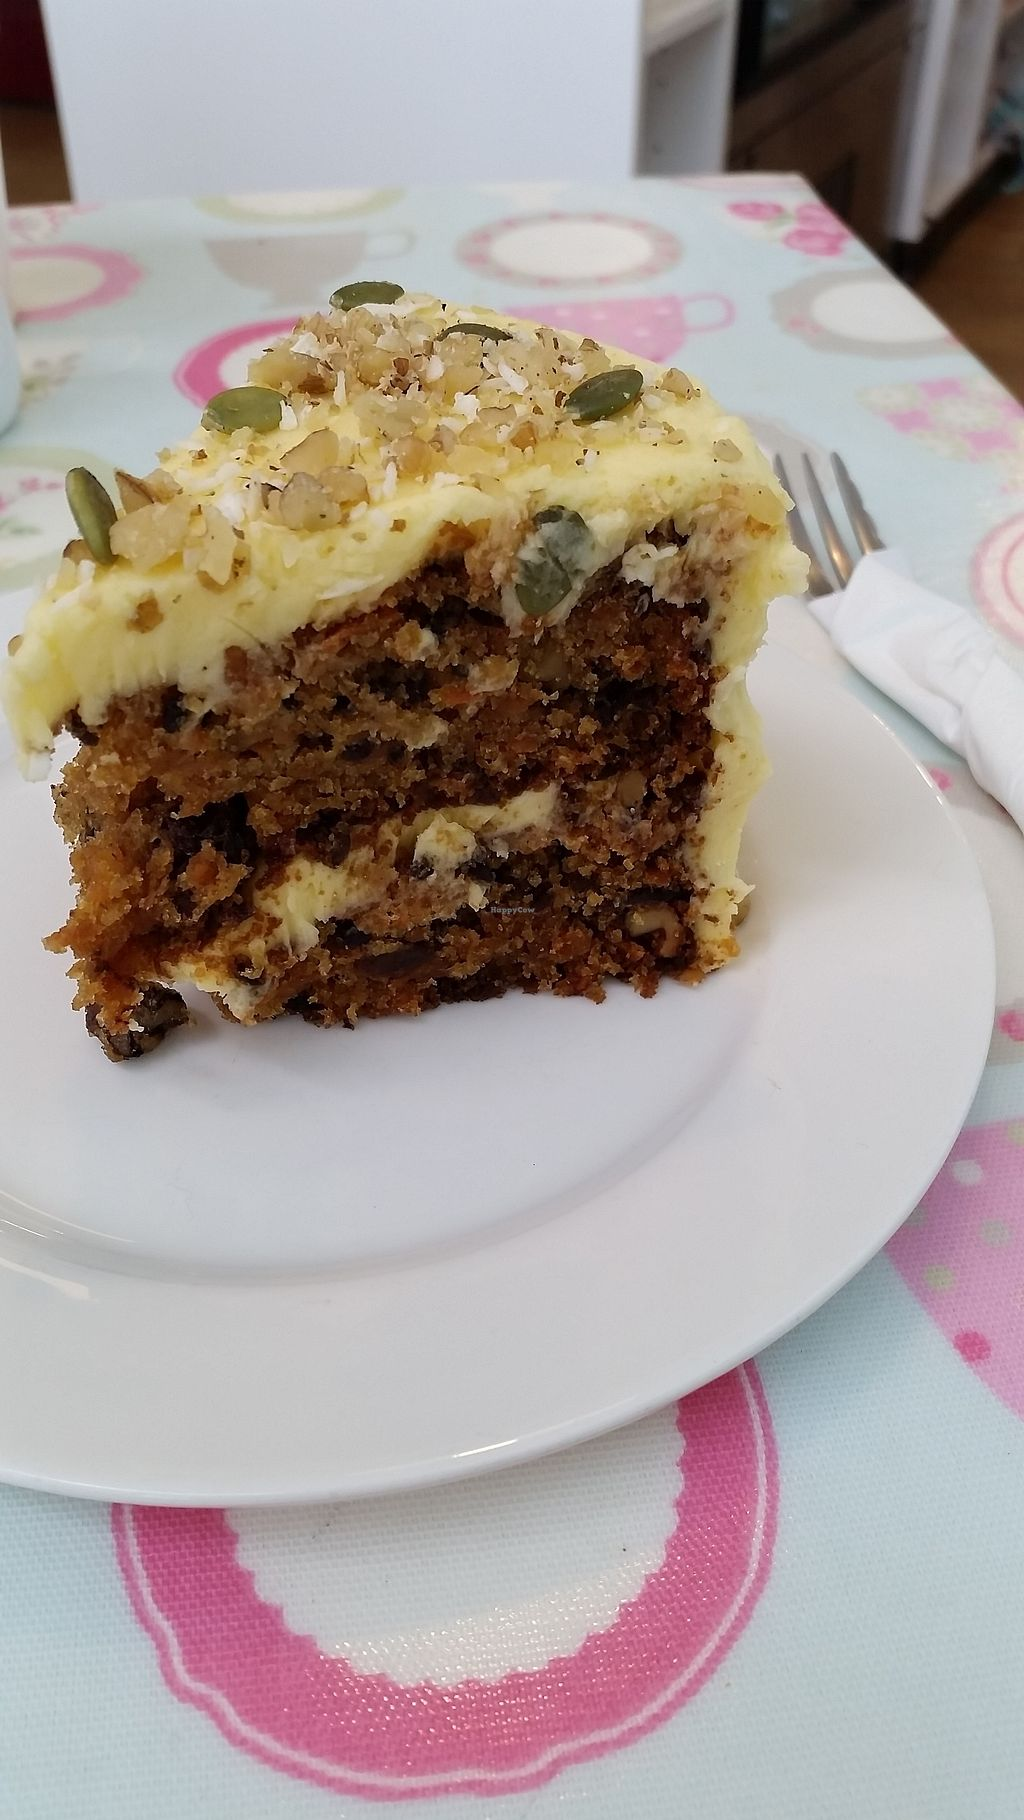 """Photo of Penelopes Cakery Deli  by <a href=""""/members/profile/AndyTheVWDude"""">AndyTheVWDude</a> <br/>Delicious carrot cake <br/> September 4, 2017  - <a href='/contact/abuse/image/95170/300981'>Report</a>"""